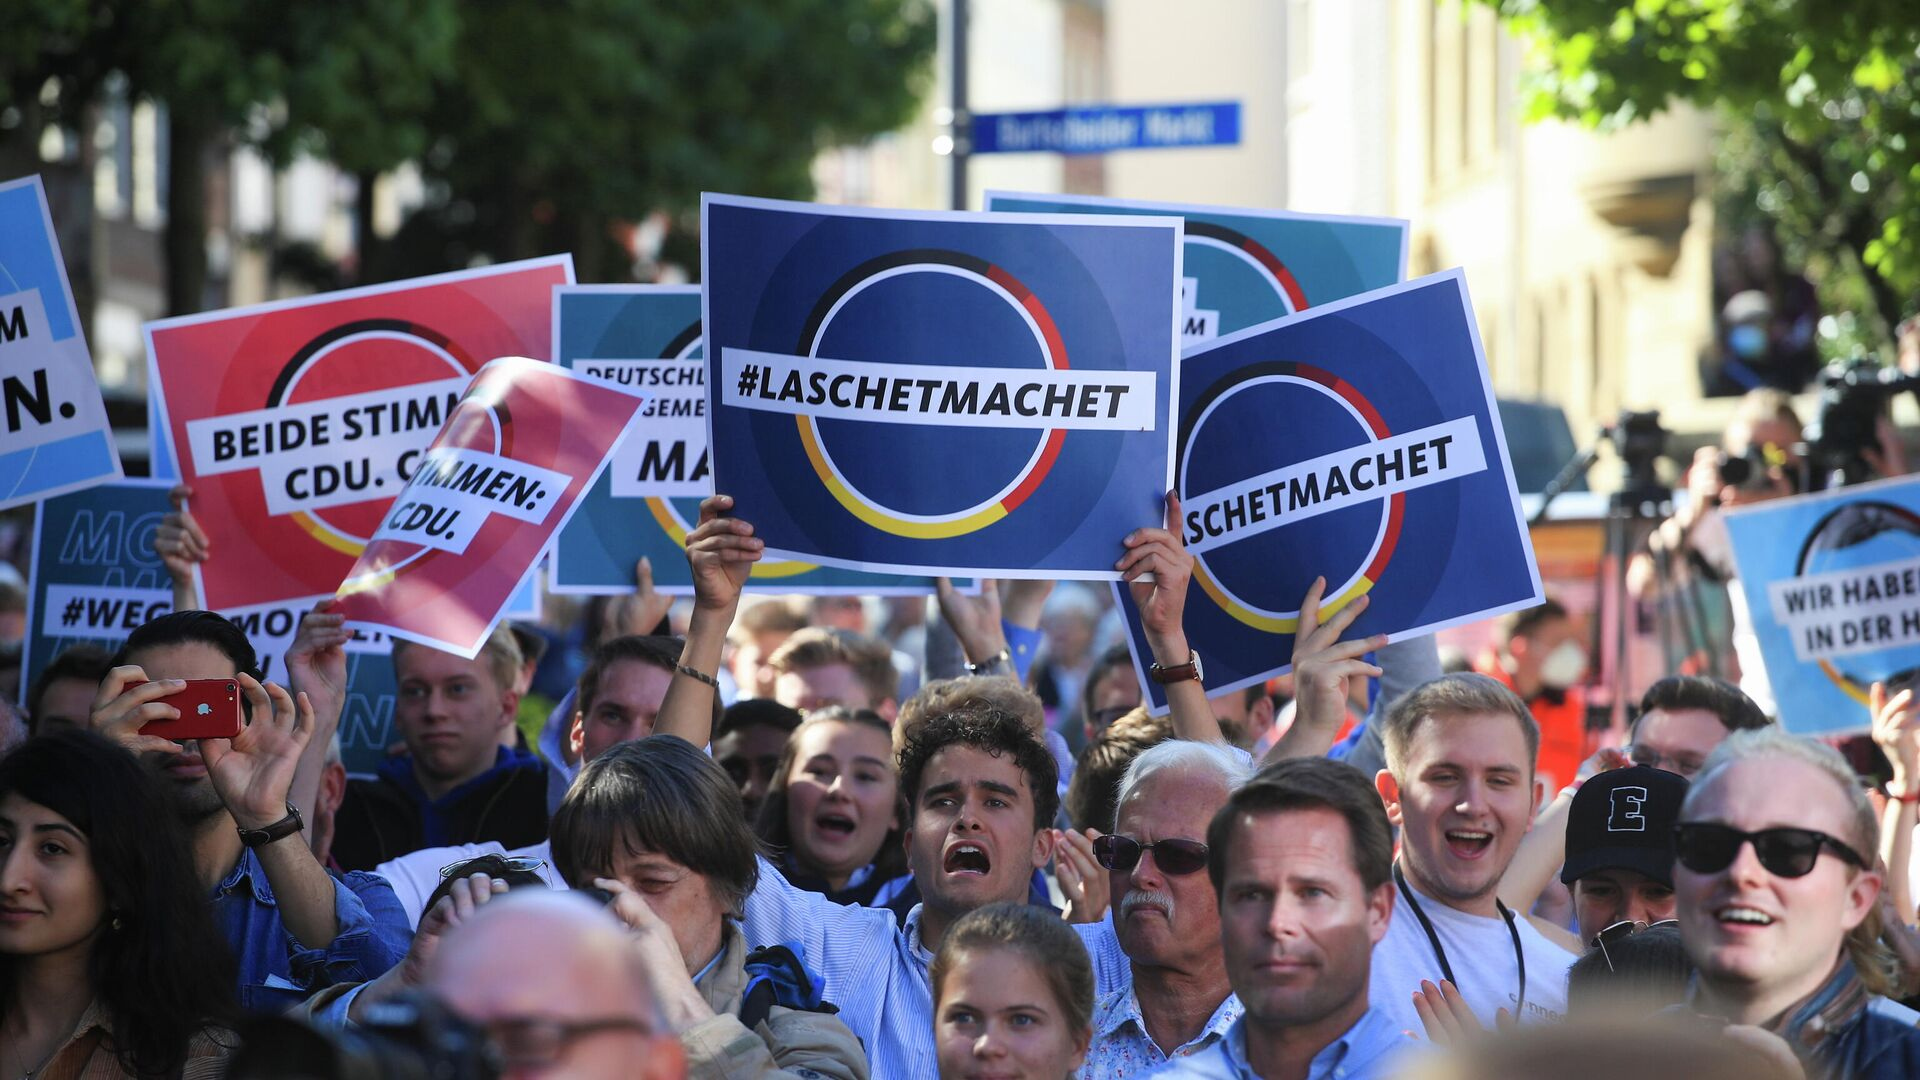 Supporters take part in a rally with German Chancellor Angela Merkel and North Rhine-Westphalia State Premier, Christian Democratic Union (CDU) party leader and candidate for chancellor Armin Laschet, ahead of the September 26 general election, in Aachen, Germany, September 25, 2021.  - Sputnik International, 1920, 26.09.2021